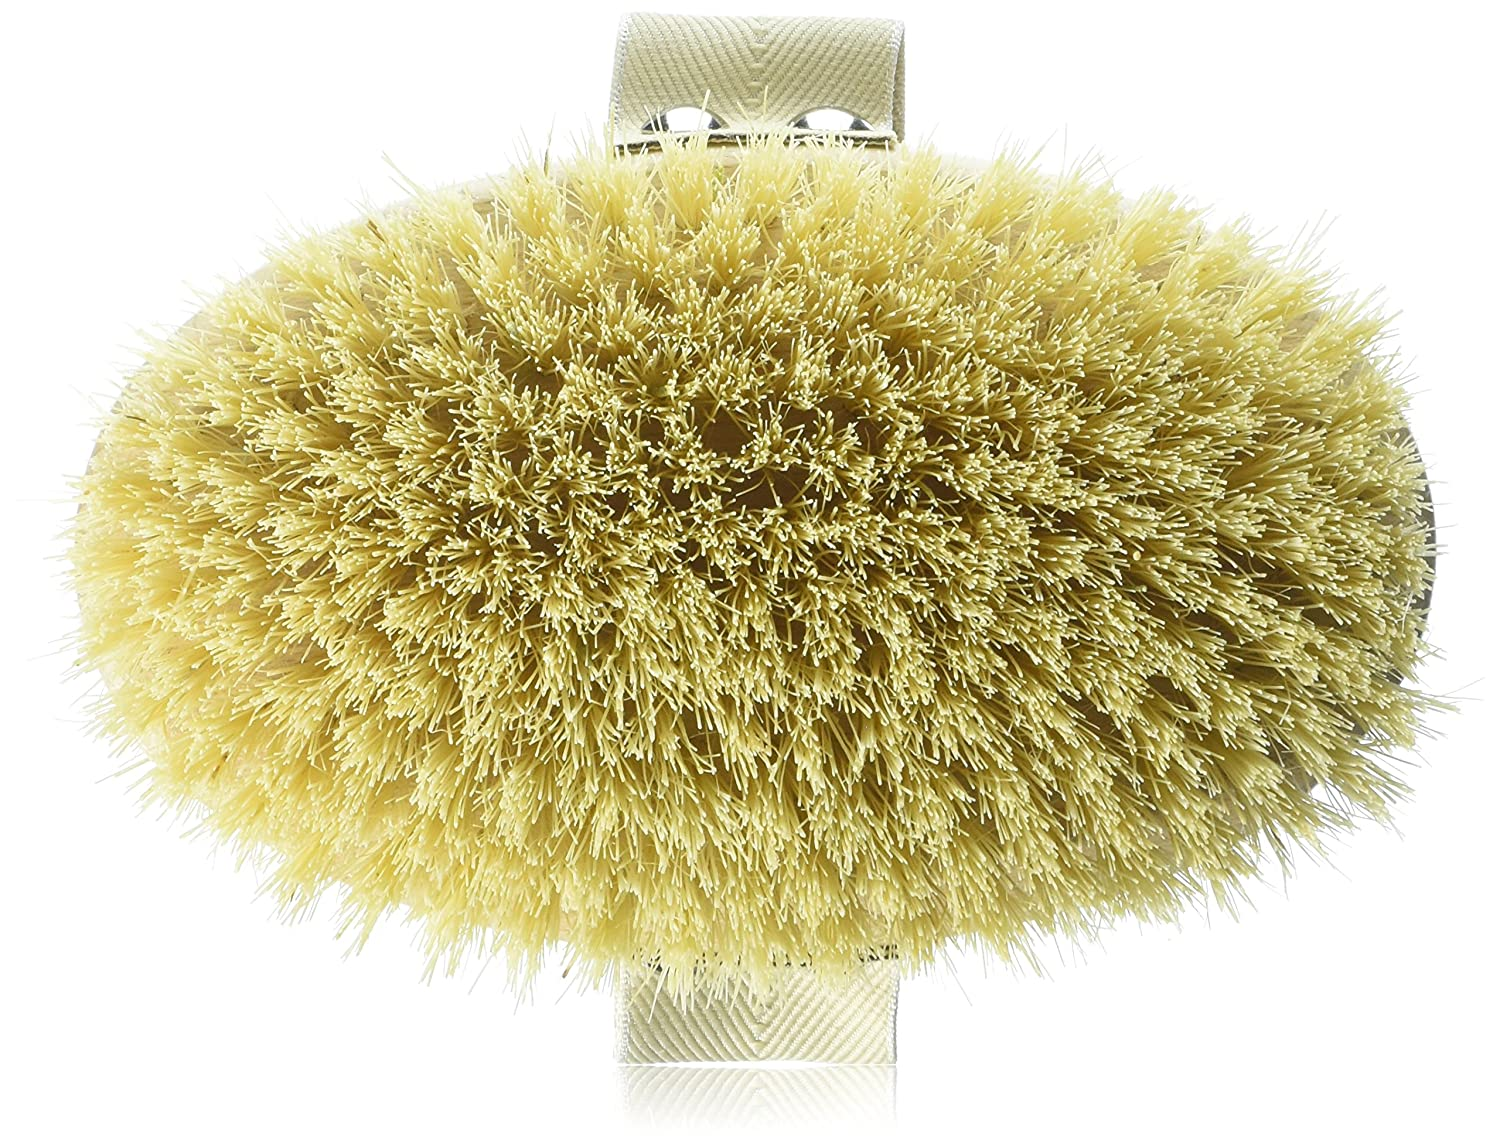 Hydrea Professional Dry Skin Body Brush with Cactus Bristles (Firm/Extra Firm Bristles) by Hydrea London HYD60